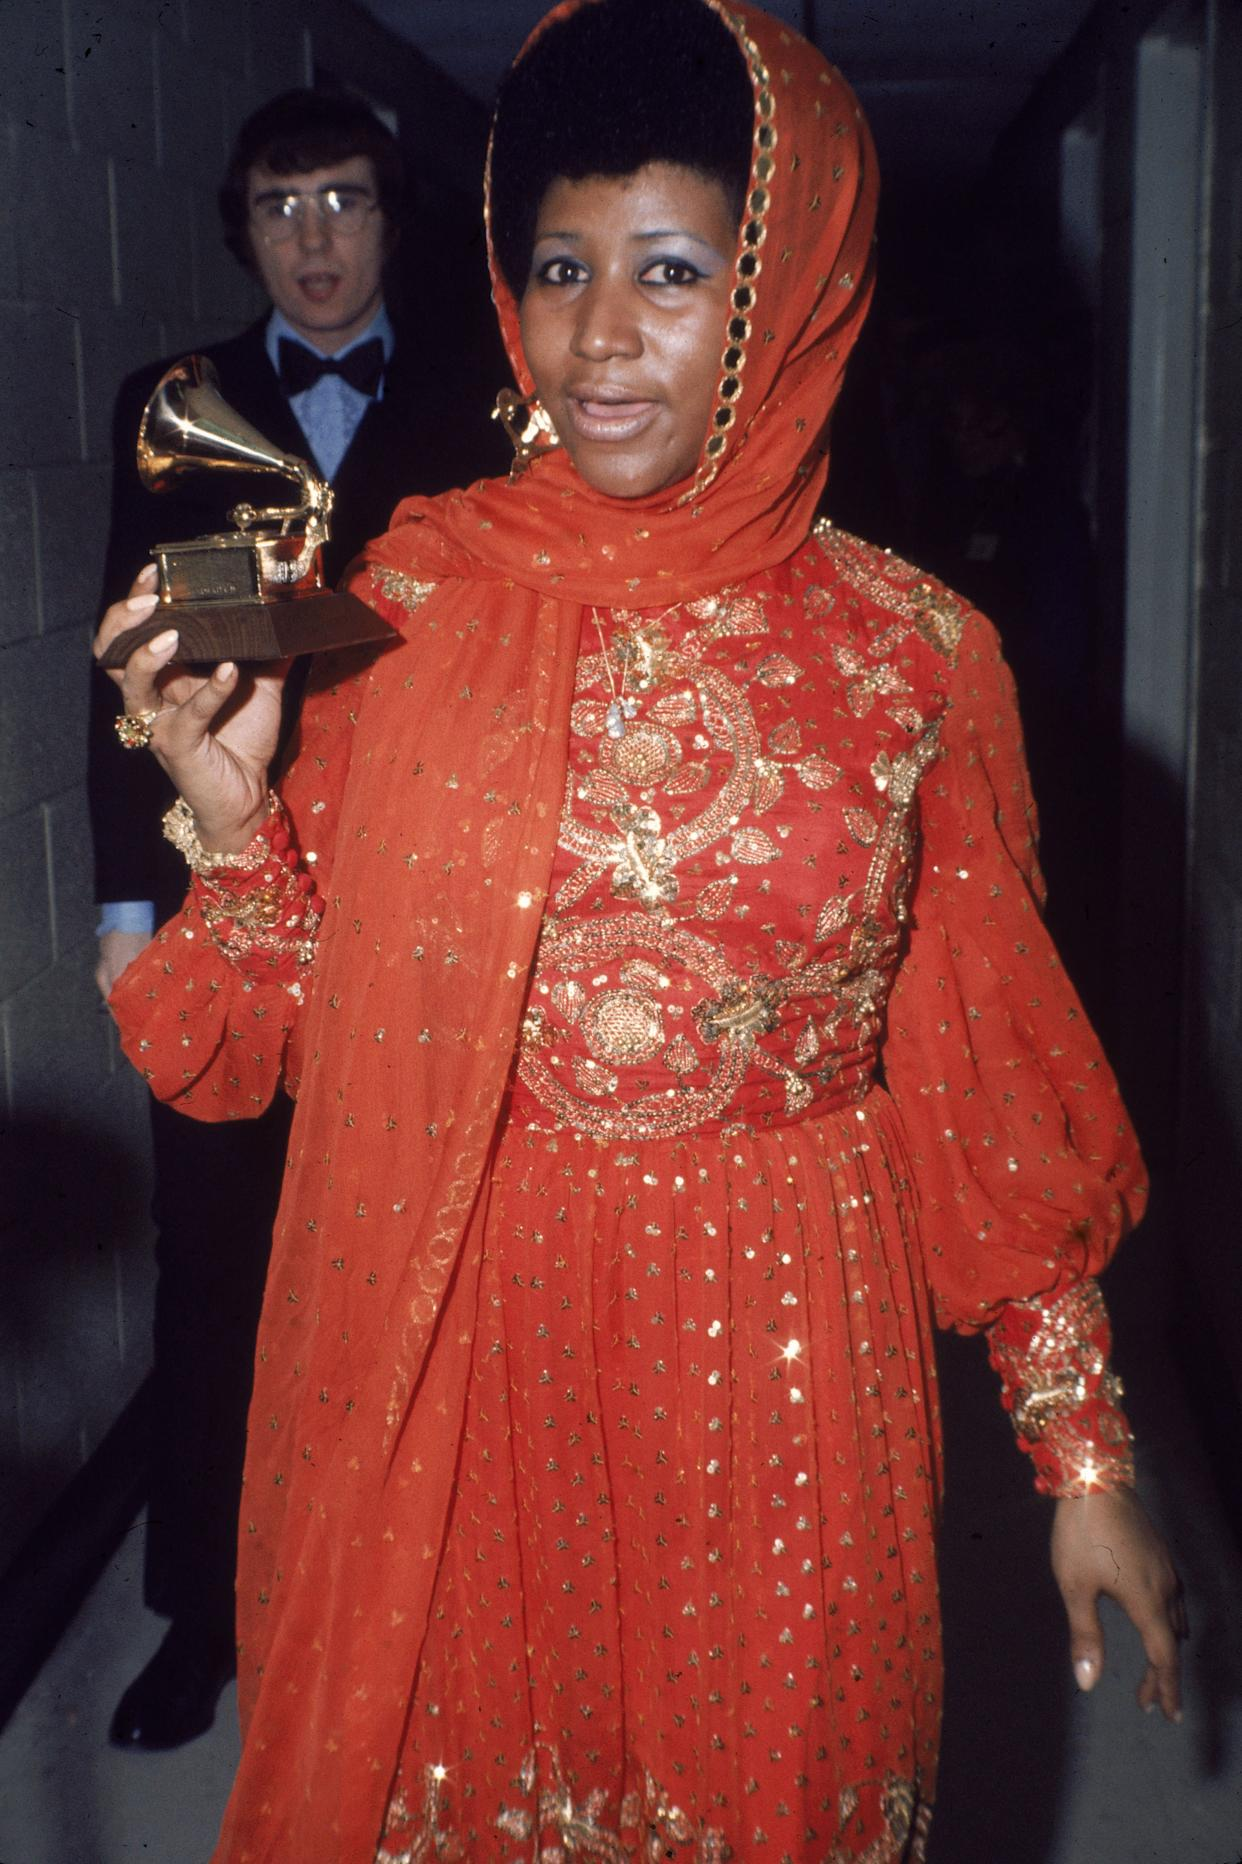 Standing backstage wearing a gold embroidered gown and holding a Grammy Award, circa 1970.